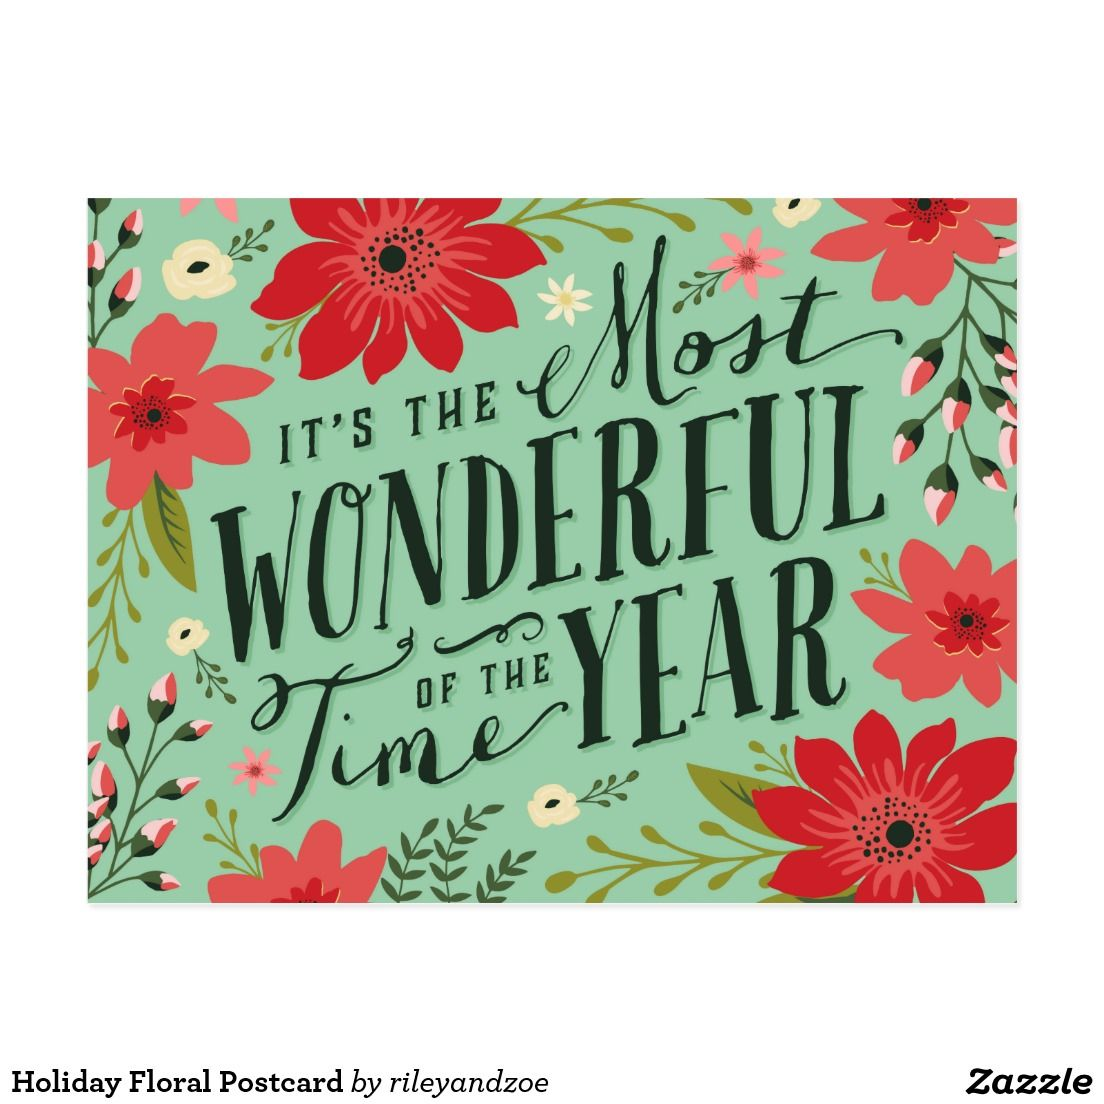 Holiday Floral Postcard Season Greeting Cards Pinterest Floral